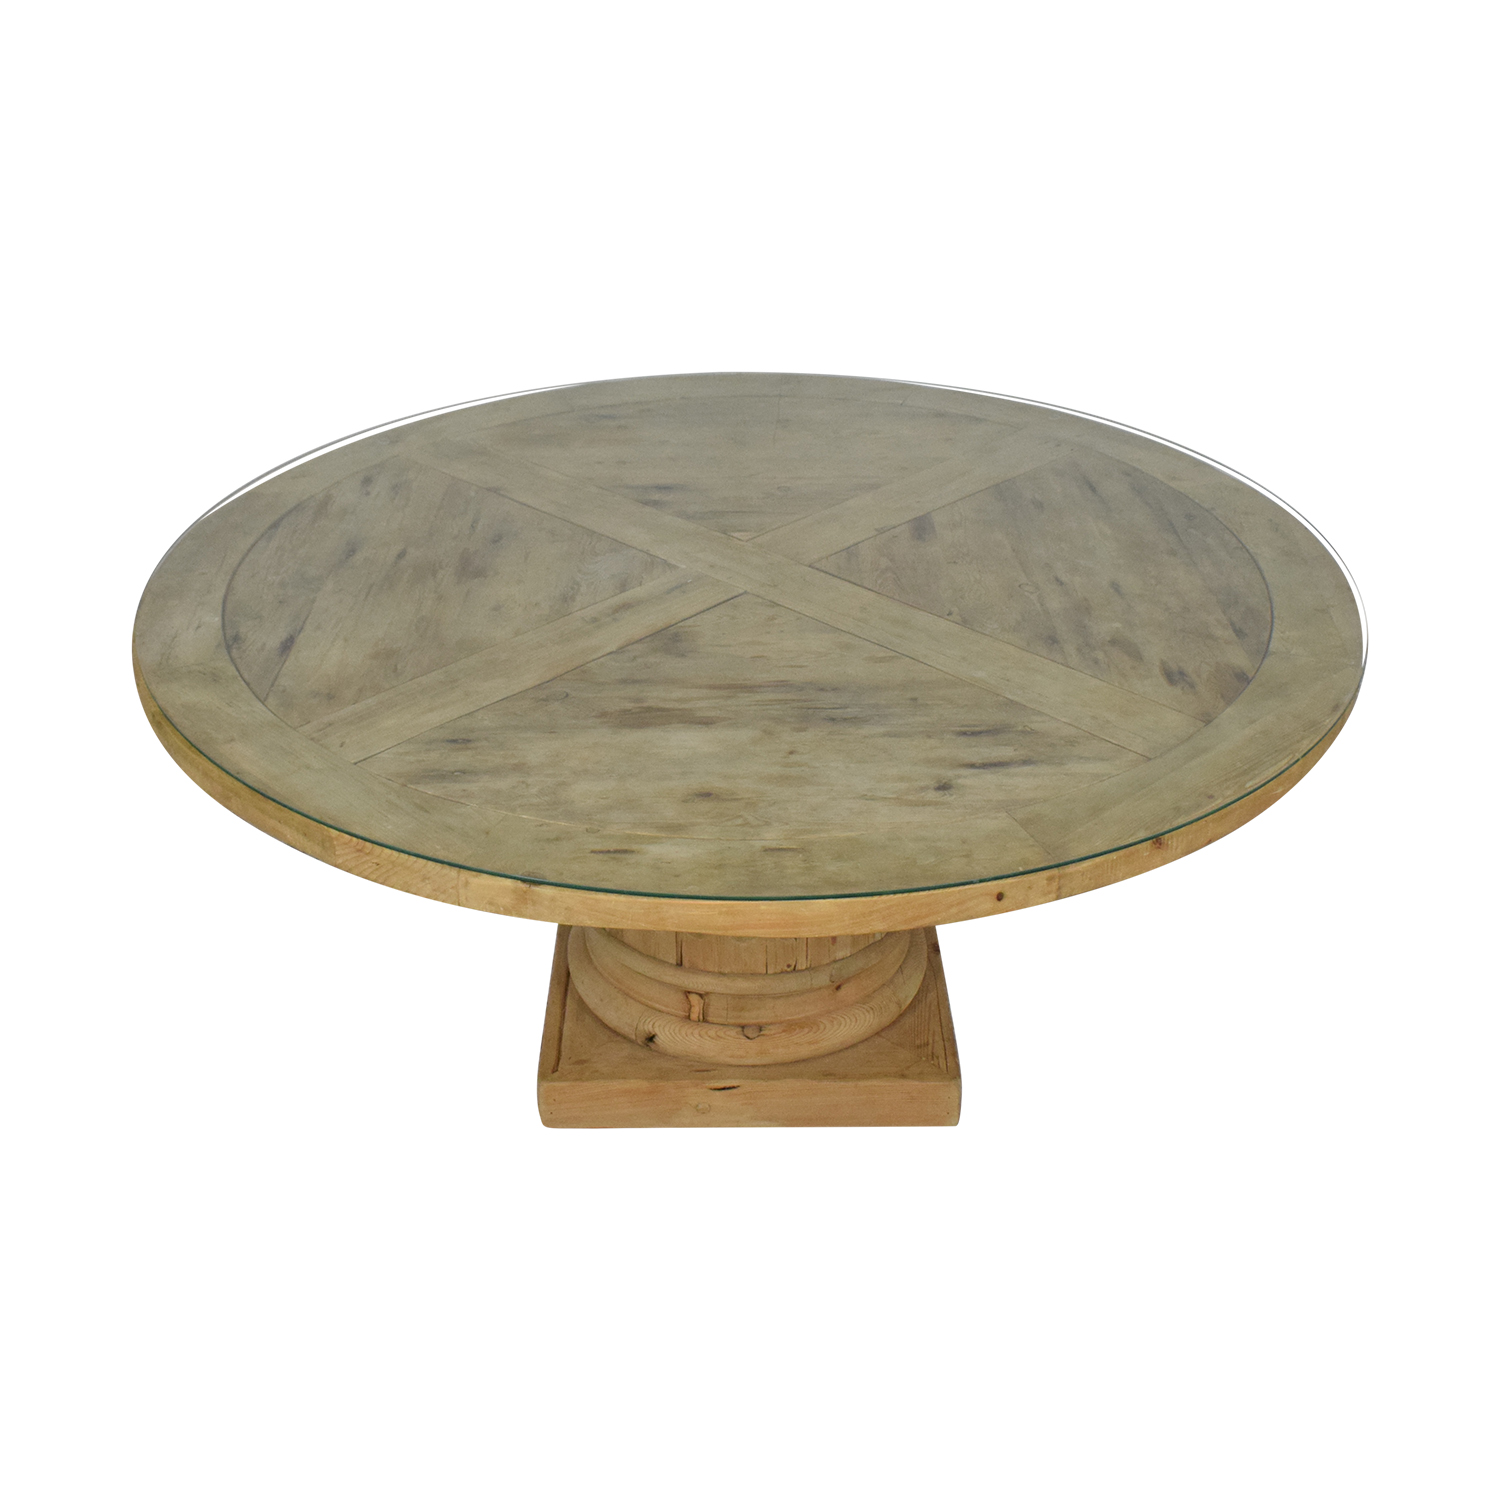 Restoration Hardware Restoration Hardware Salvaged Wood Architectural Column Dining Table light brown